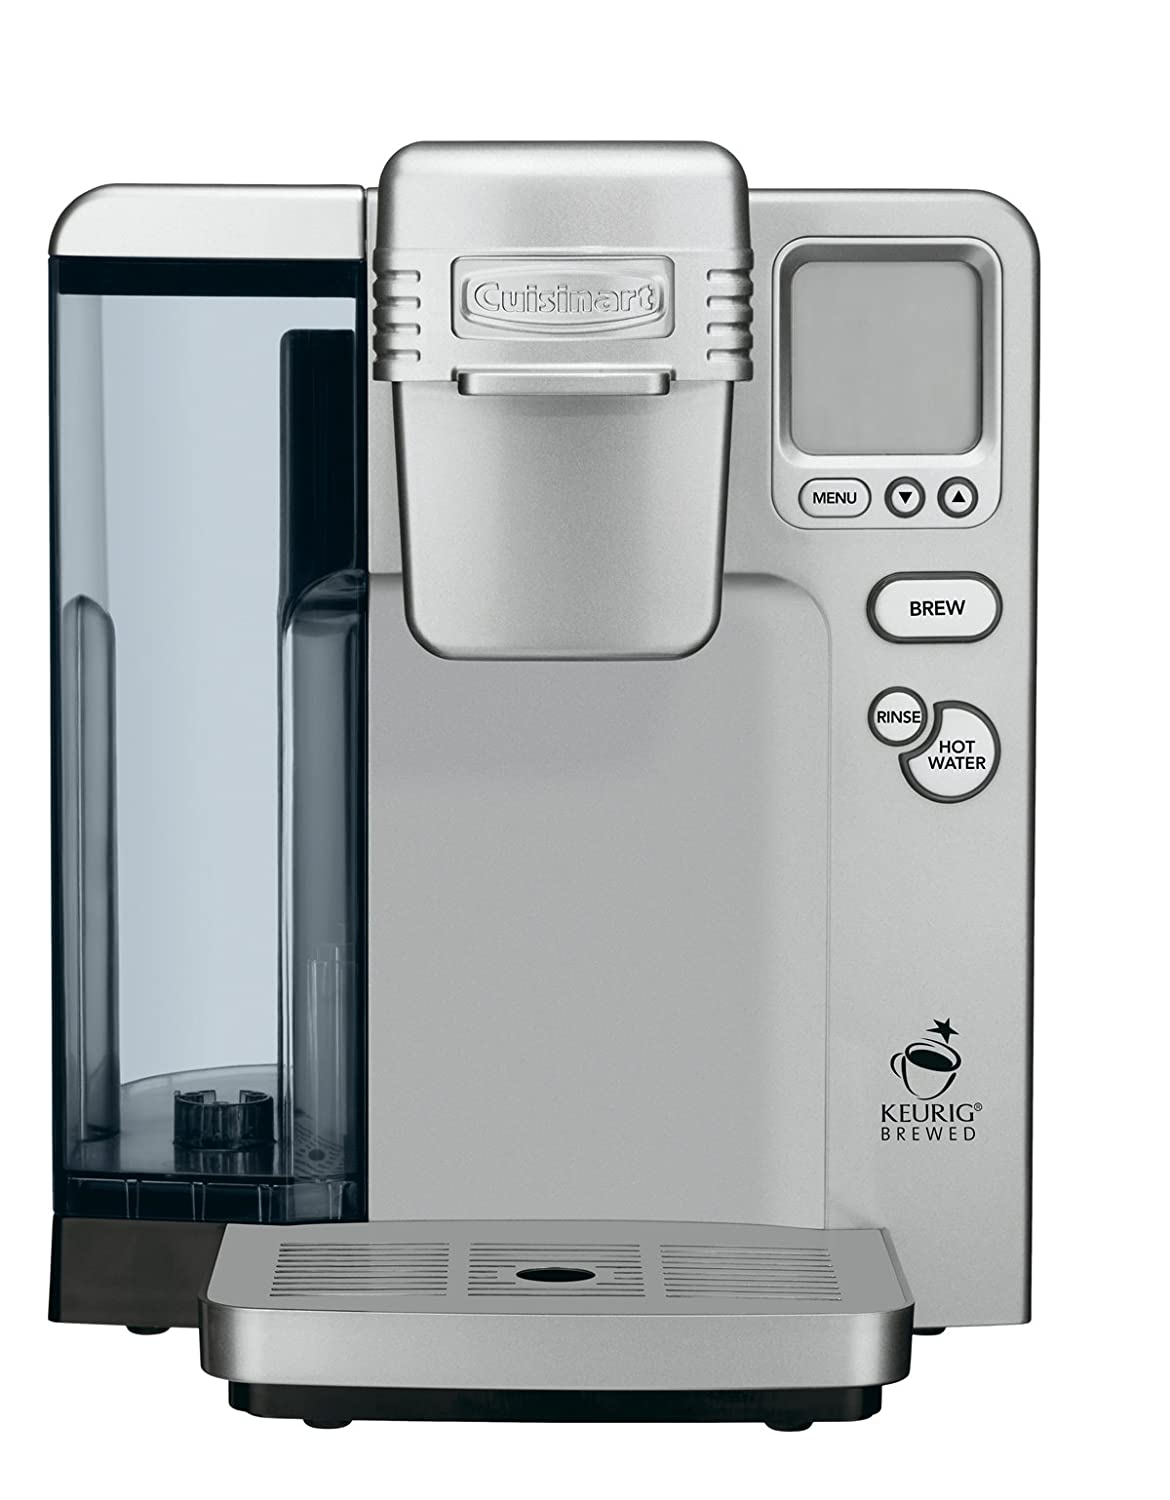 Cuisinart SS-700 Single Serve Brewing System, Silver – Powered by Keurig